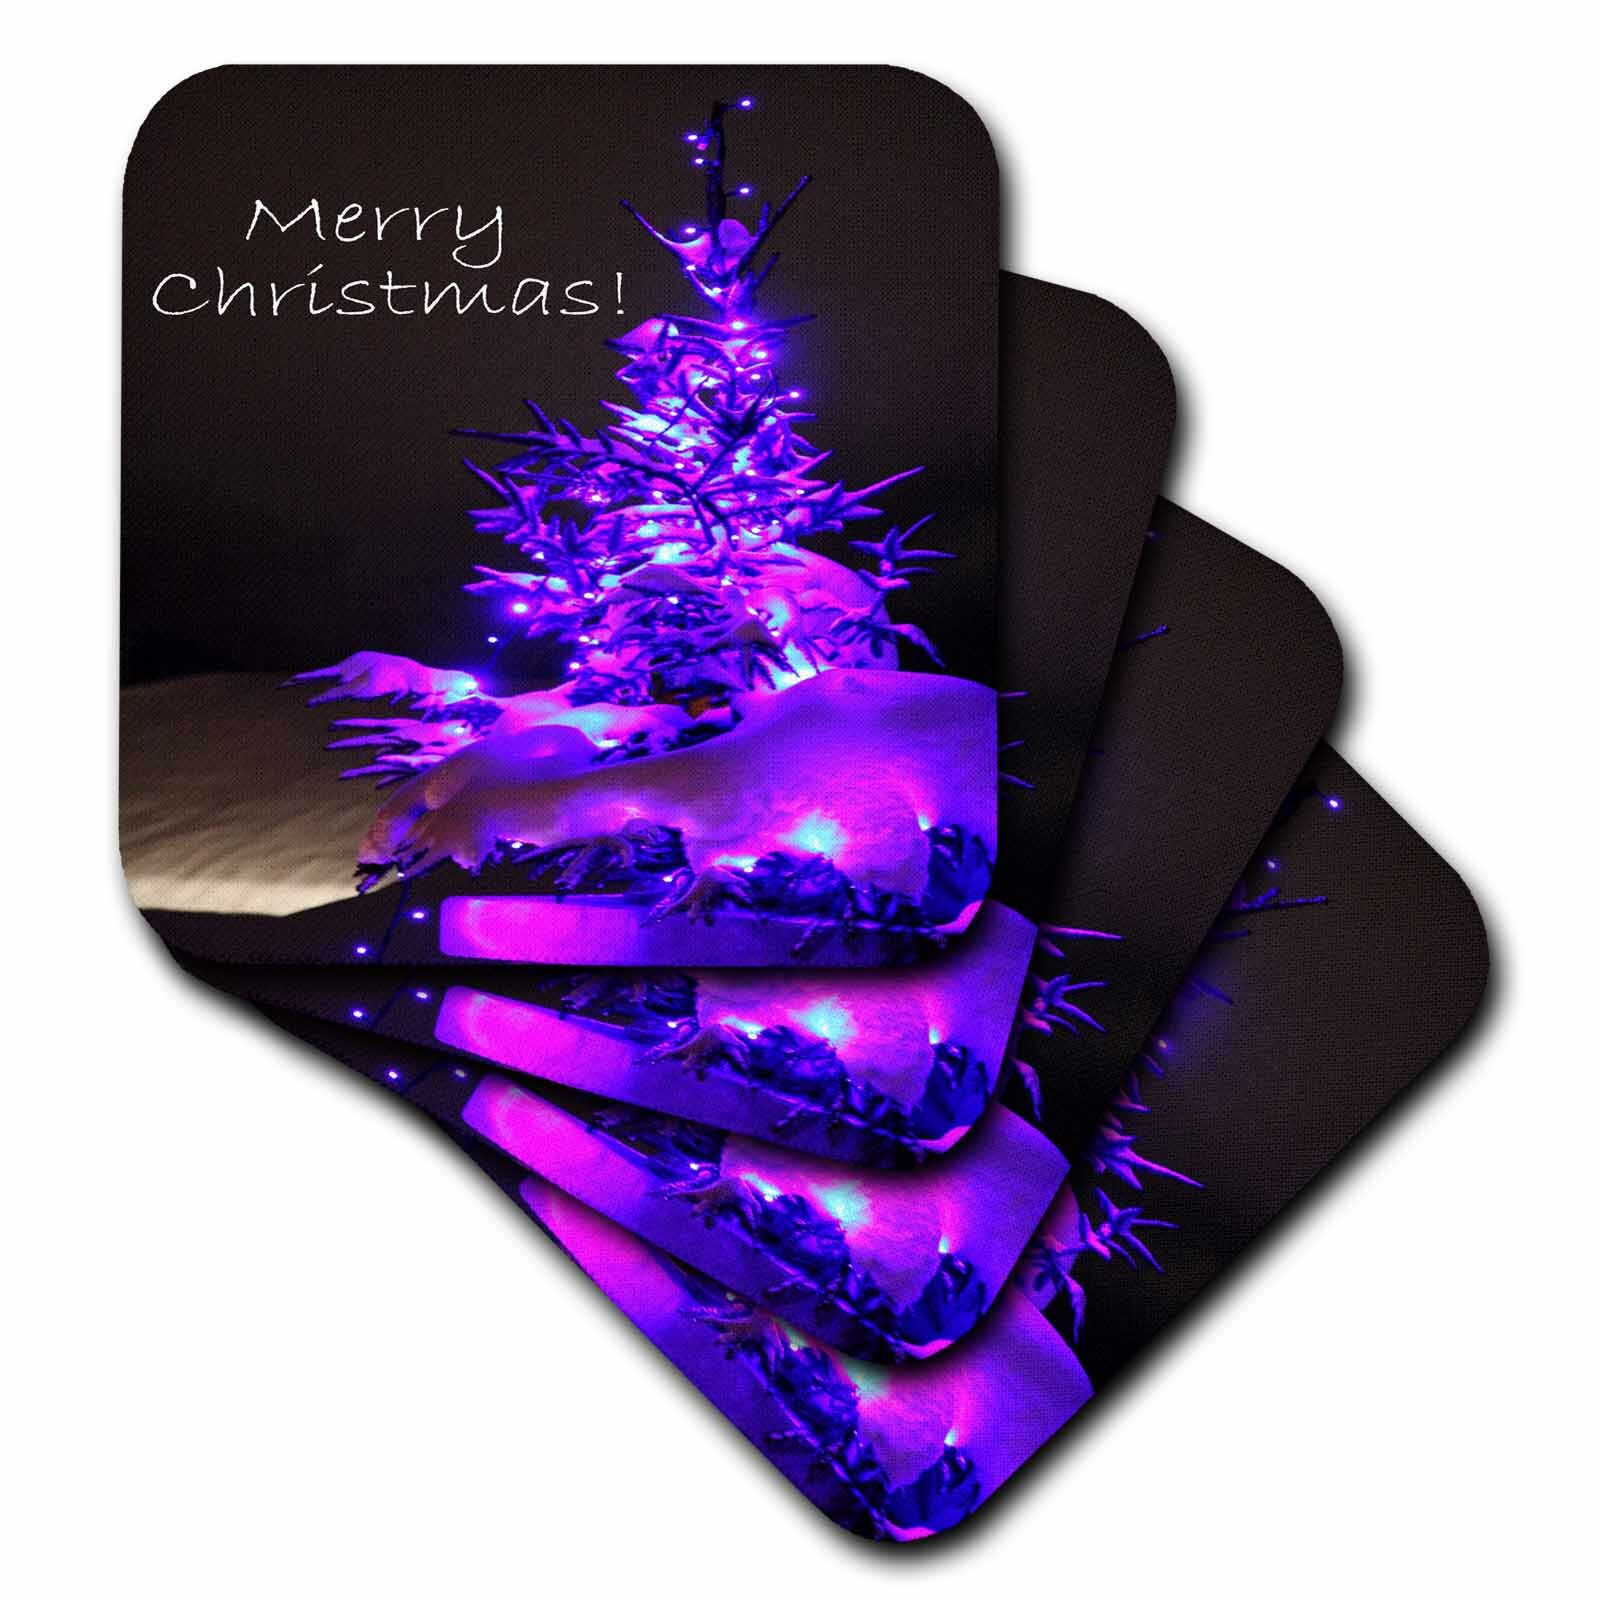 3drose Ceramic Tile Coasters Pretty Christmas Treemerry Christmas In Purple With White Text Set Of 4 Cst 8833 3 Wayfair